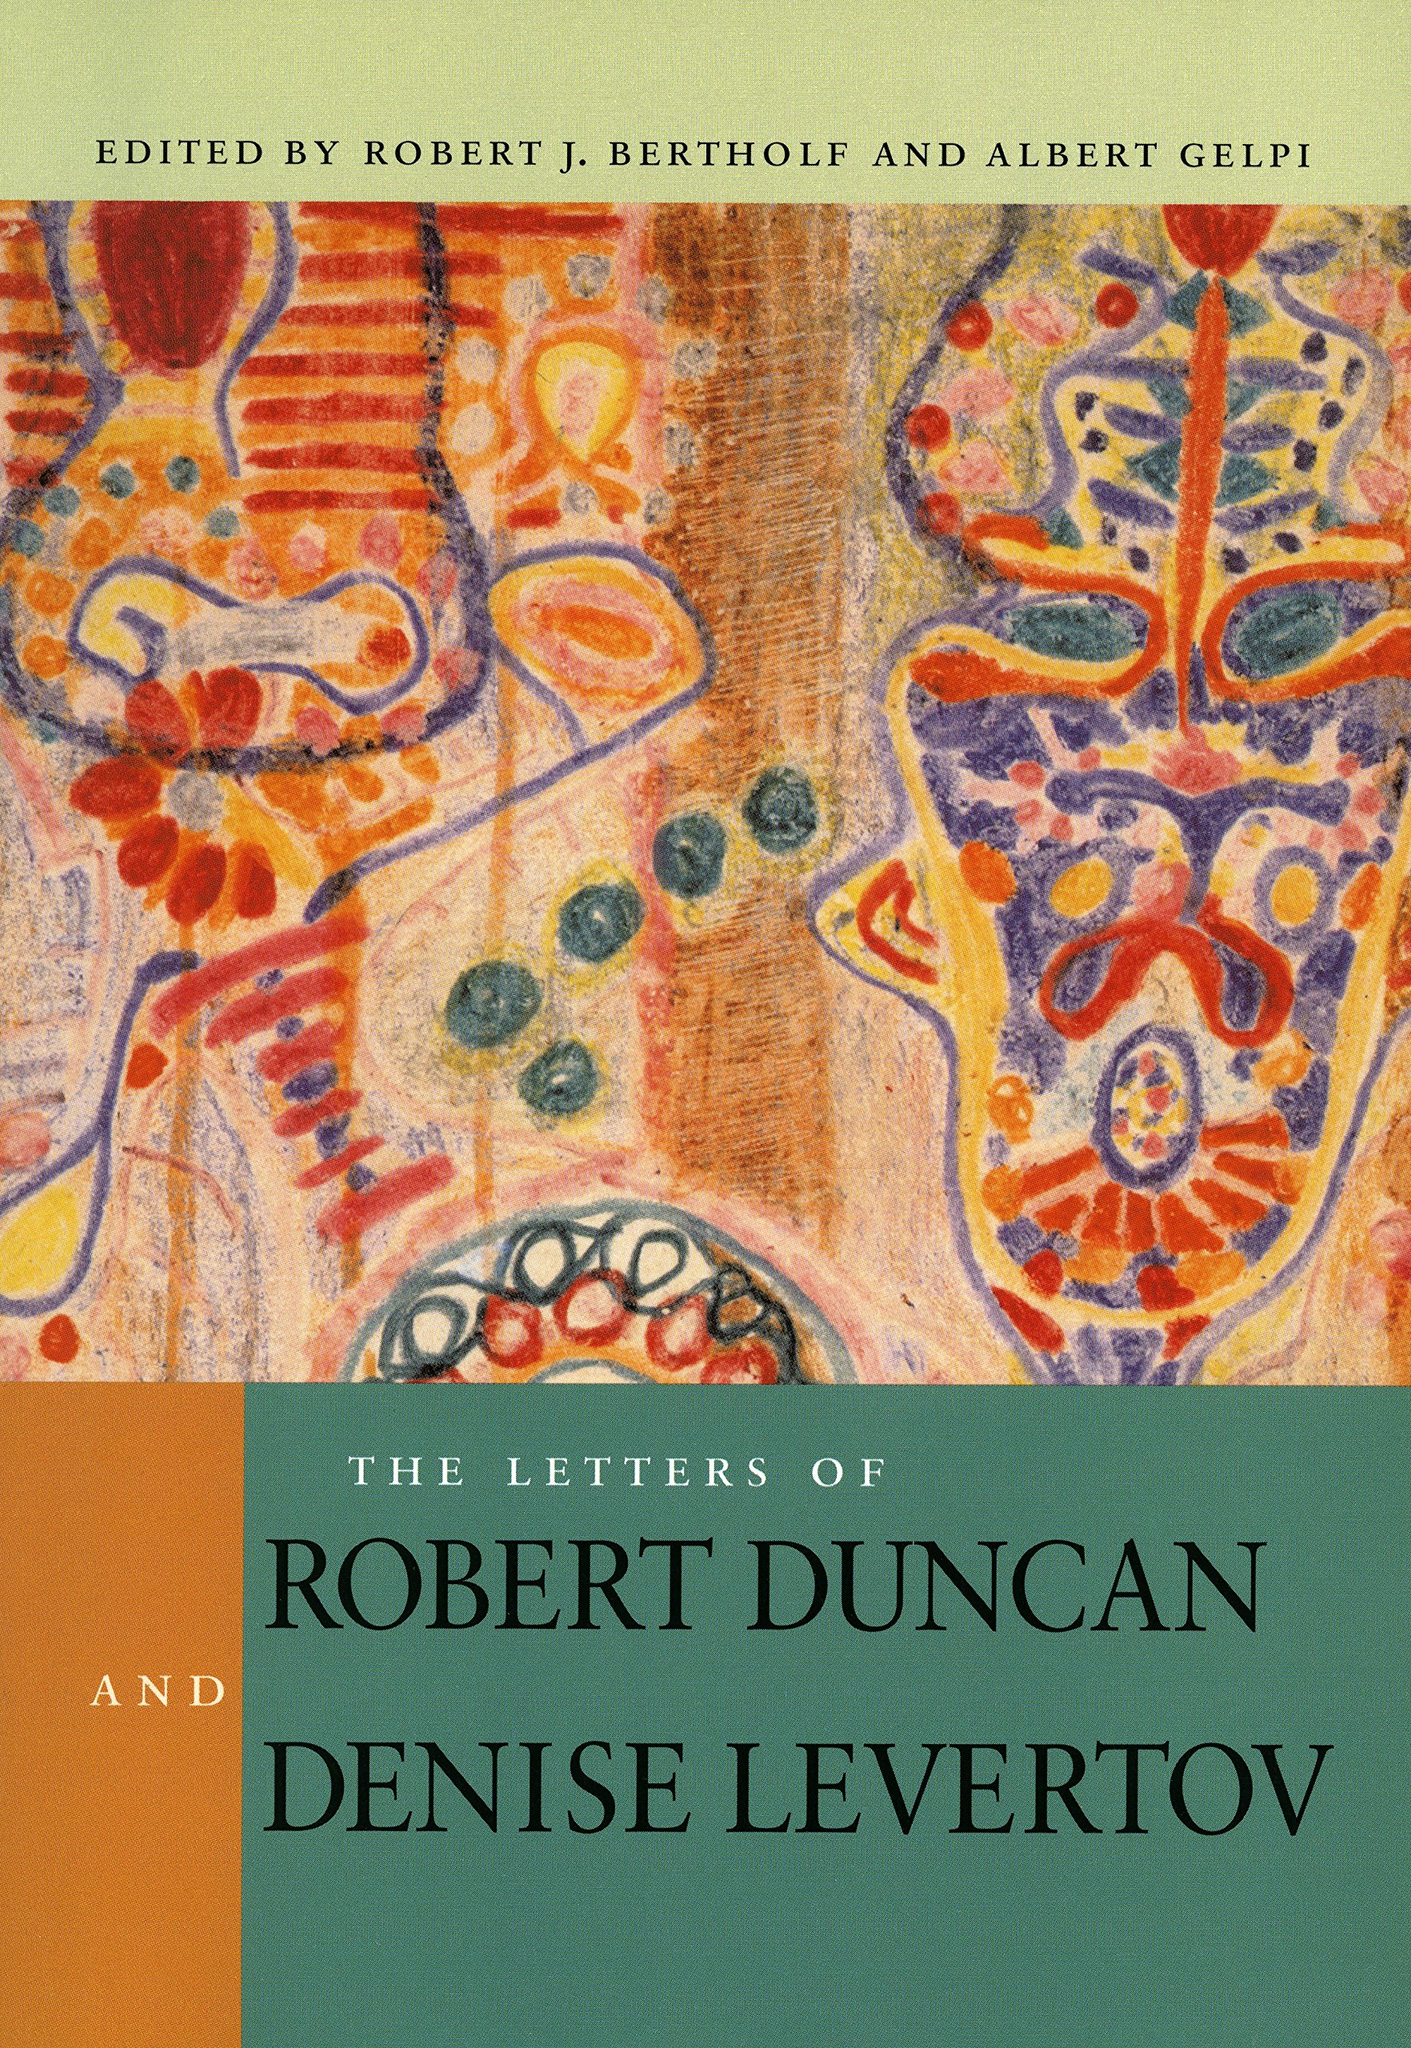 The Letters of Robert Duncan and Denise Levertov